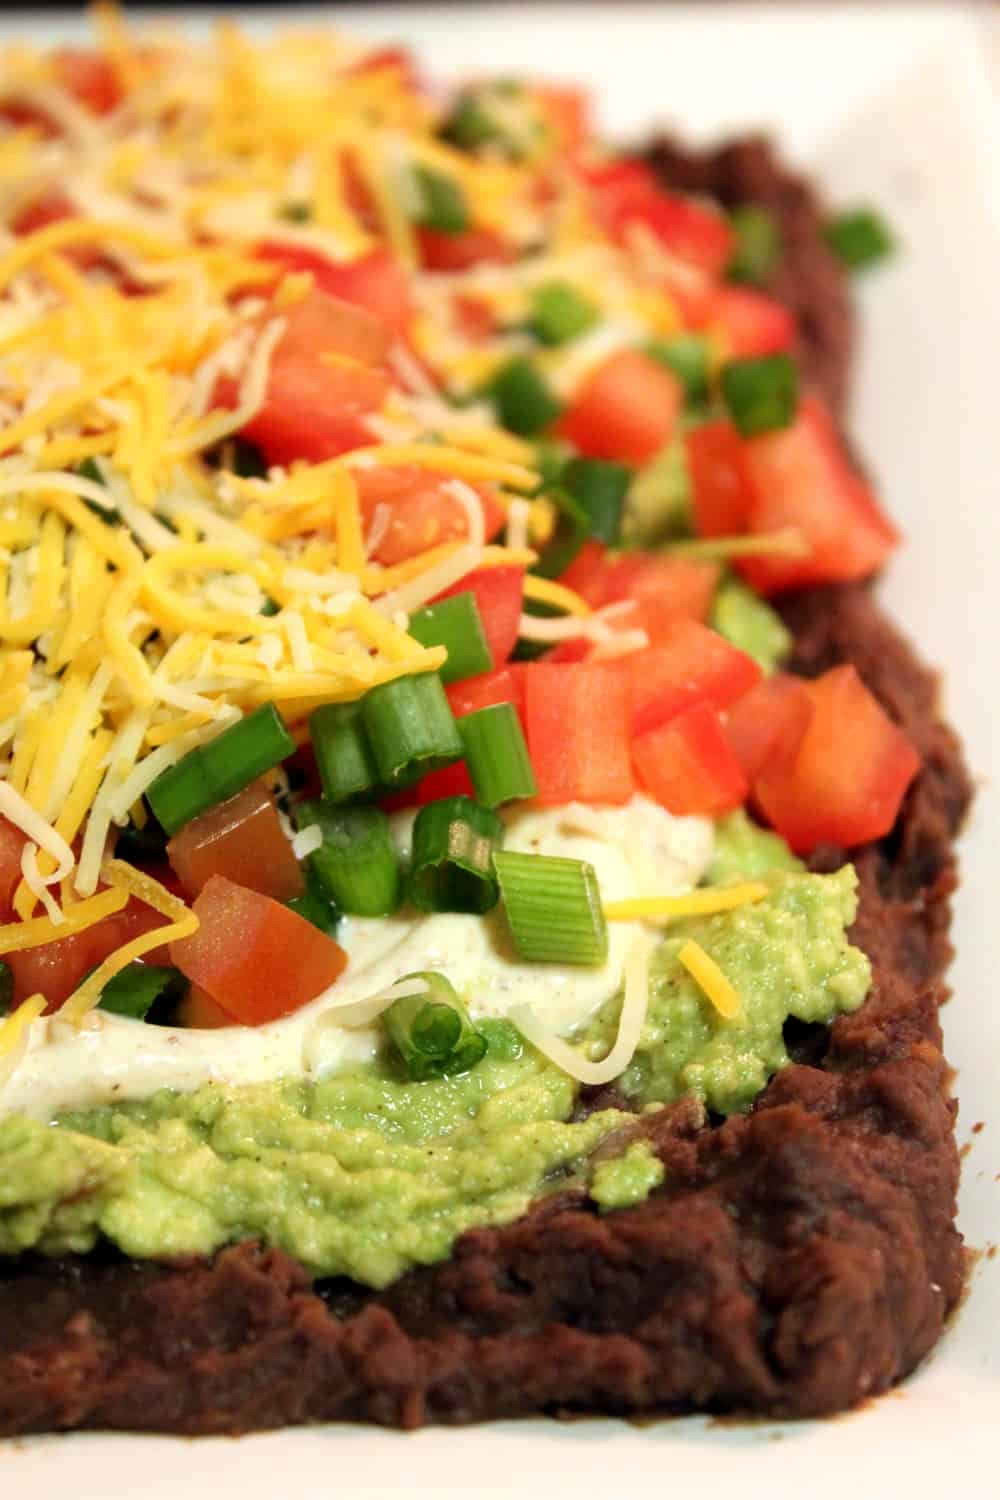 Healthy Super Bowl Party Recipes — The Picky Eater: A Healthy Food ...